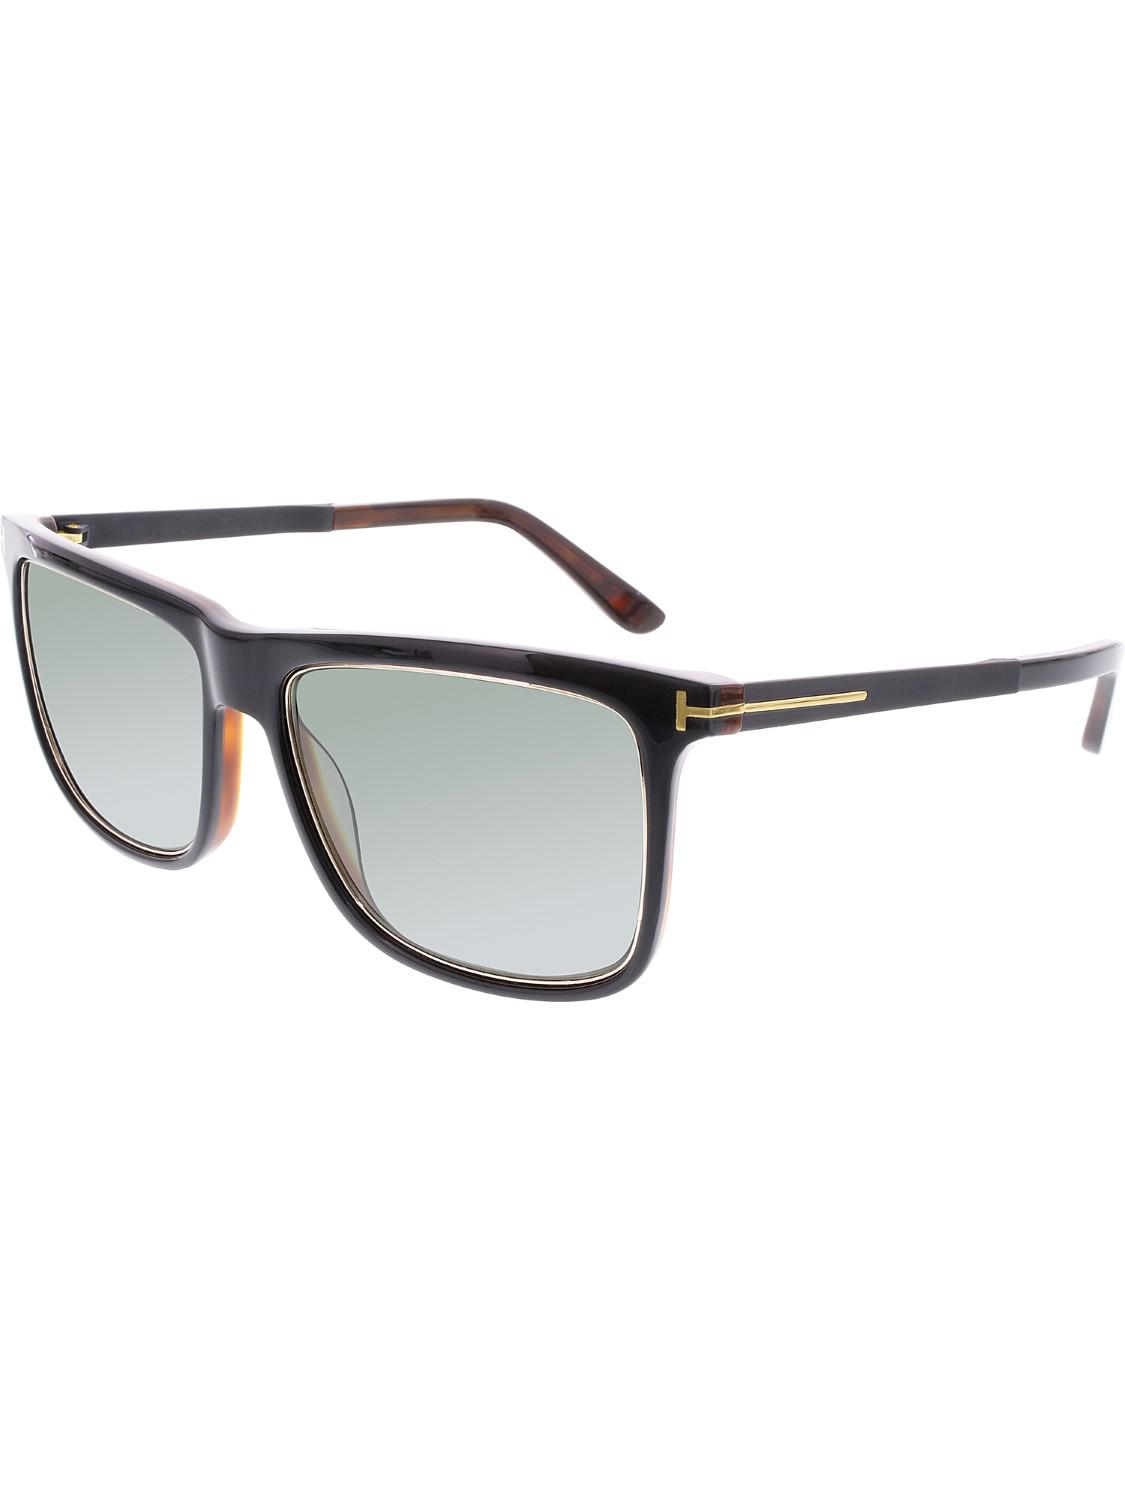 b595e5708e94 Lyst - Tom Ford Ft0392 Karlie Square Sunglasses in Black - Save ...